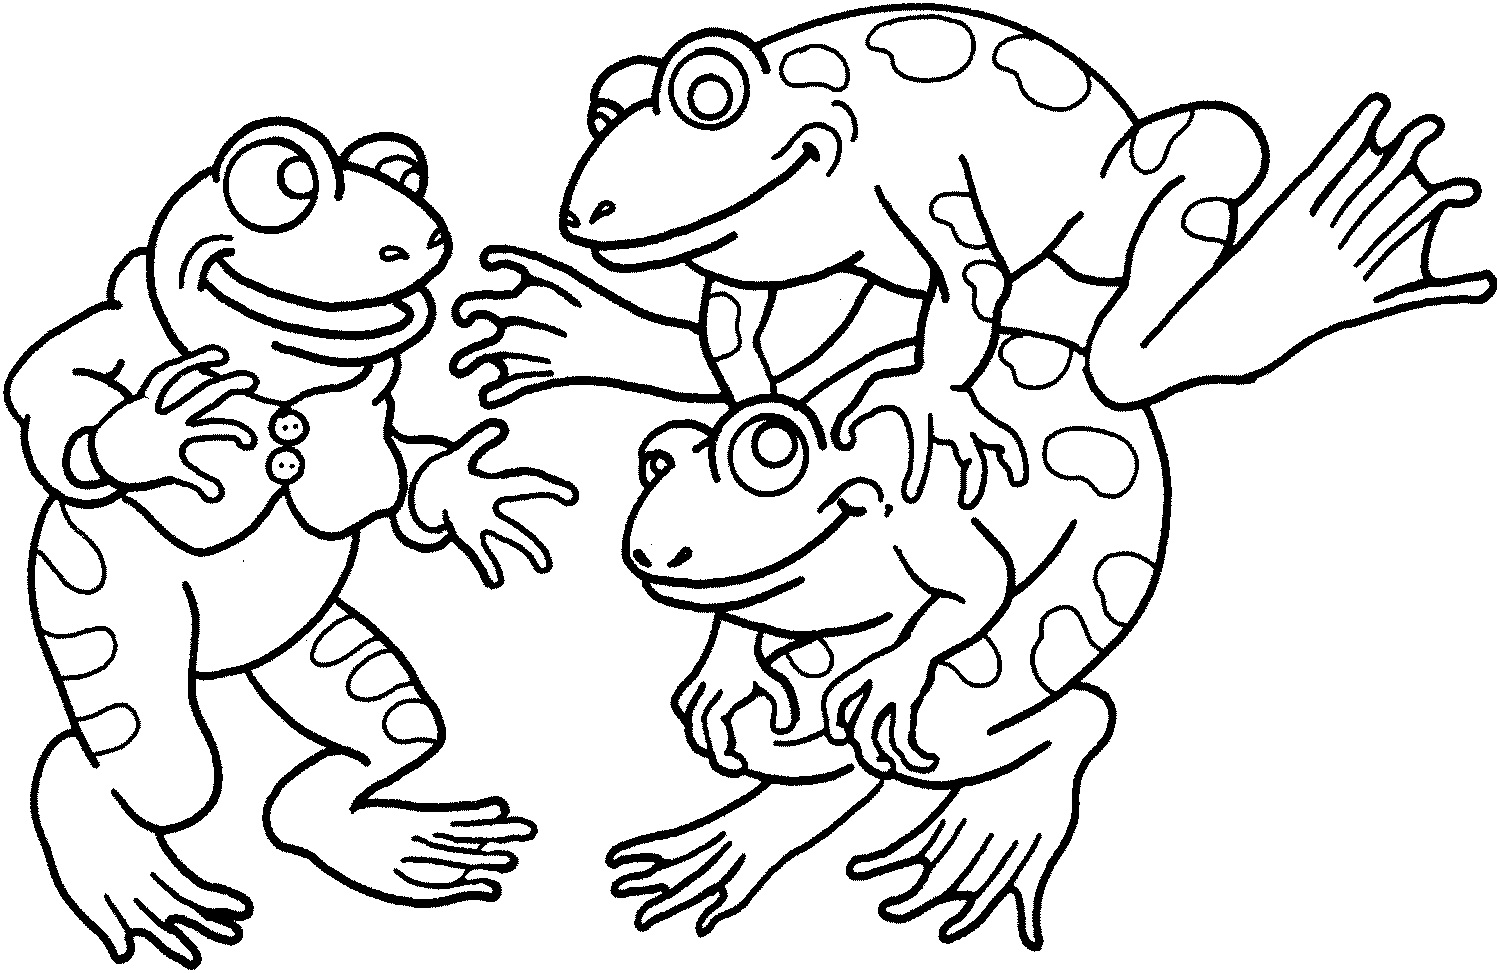 dark frog coloring pages - photo#24